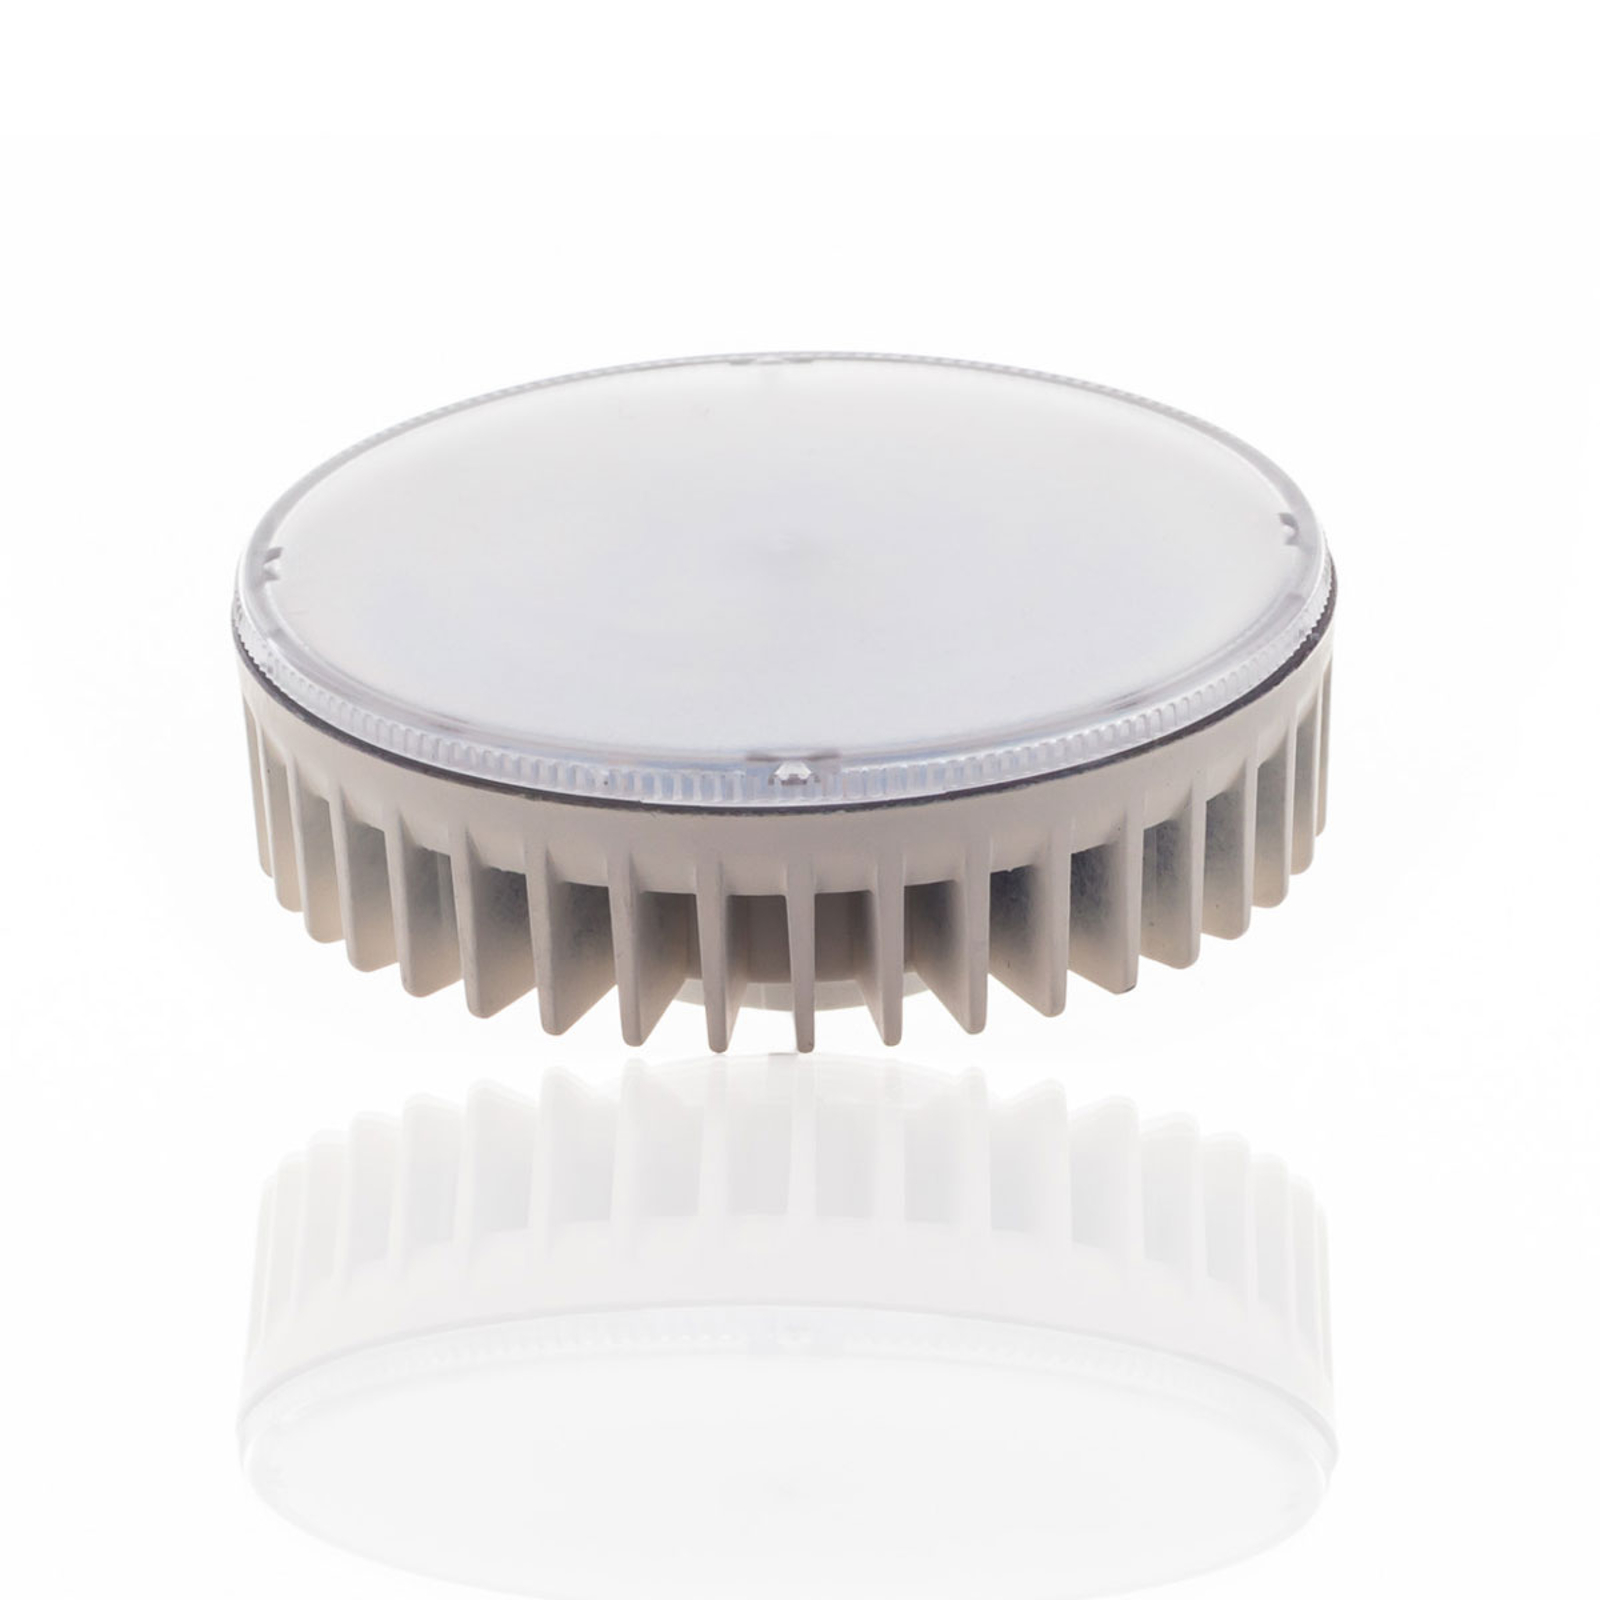 GX53 7W LED lamp with 800lm - warm white_3538034_1